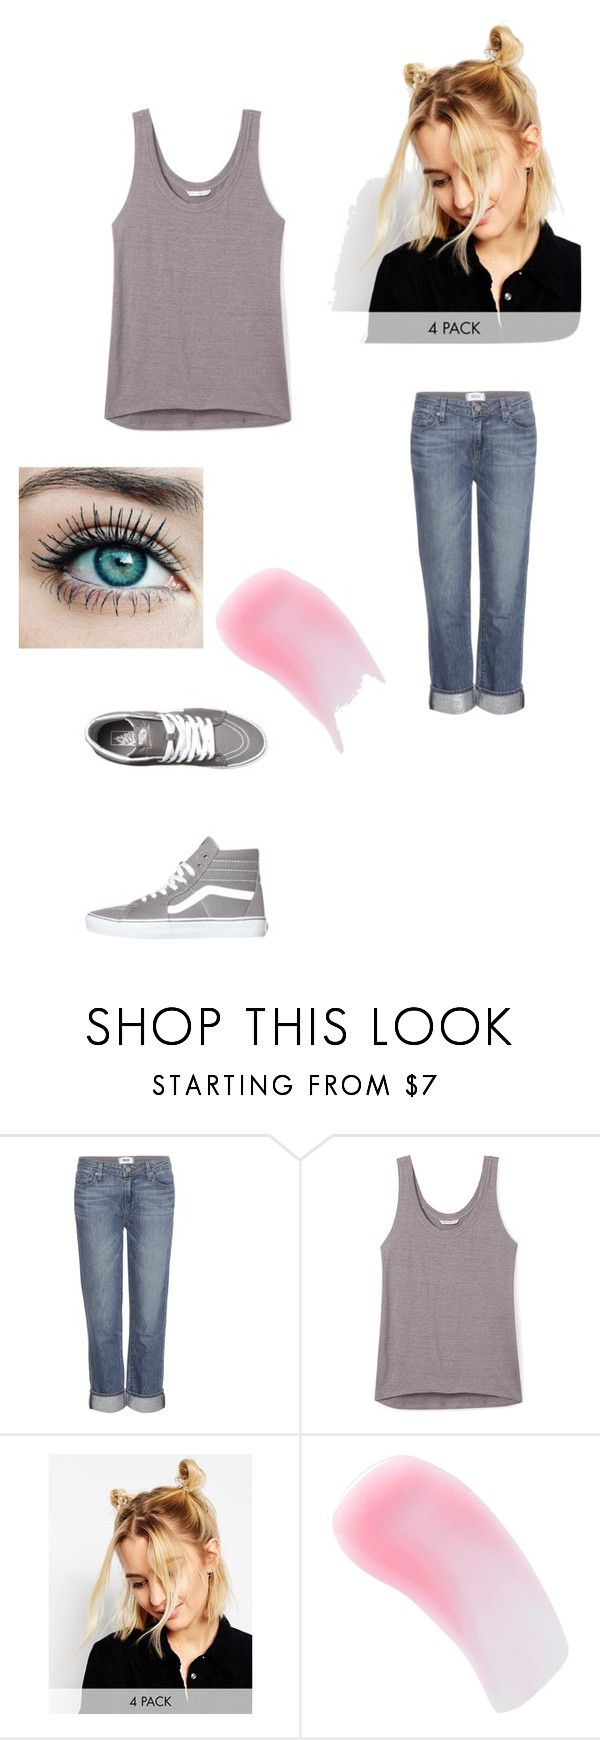 """Meeting France Again"" by maryvarleyrox on Polyvore featuring Paige Denim, Rebecca Minkoff, ASOS, Charlotte Tilbury and Vans"